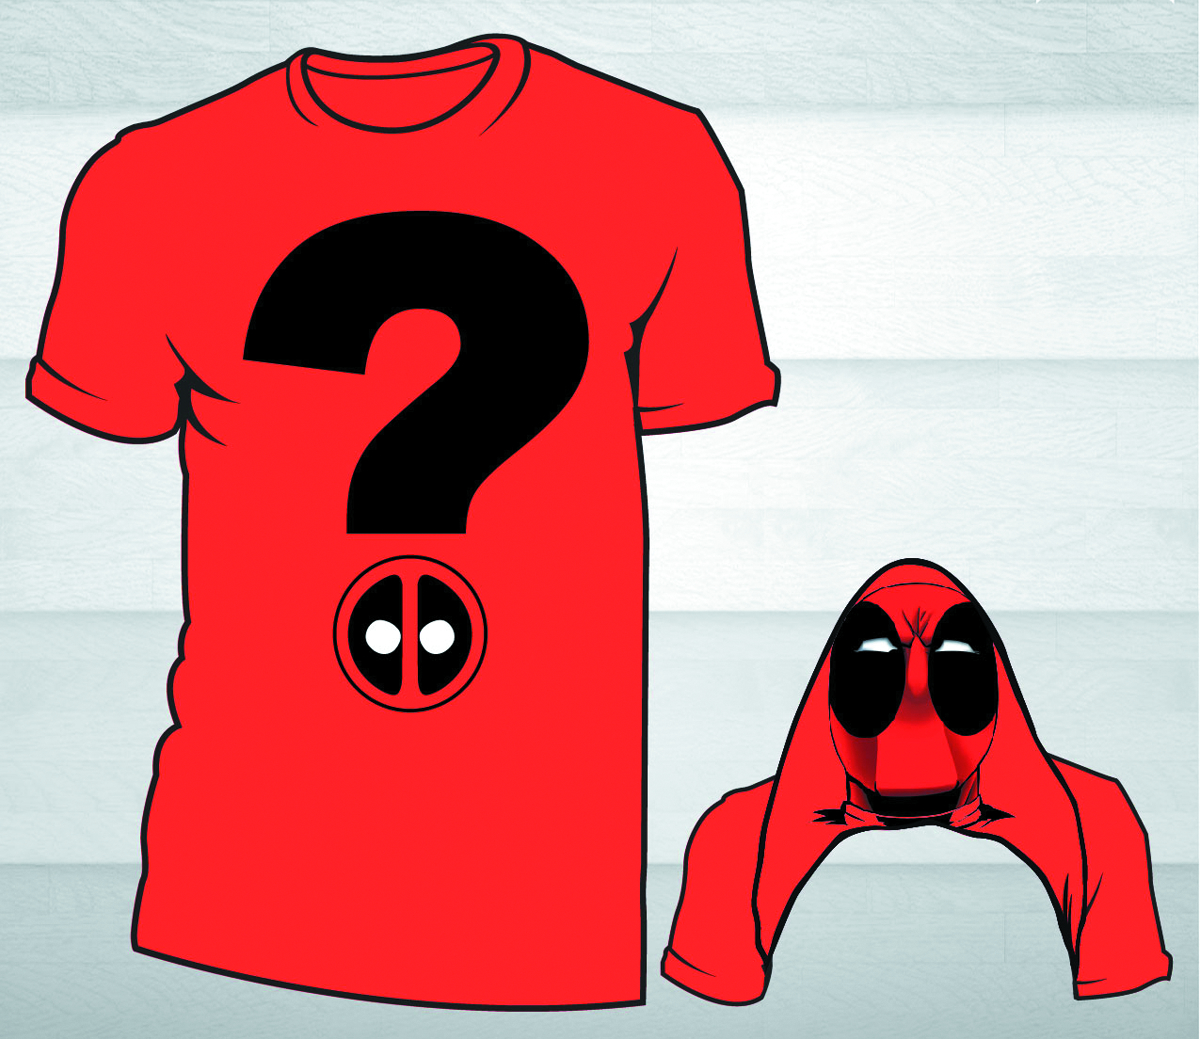 DEADPOOL QUESTION MARK PX RED T/S LG